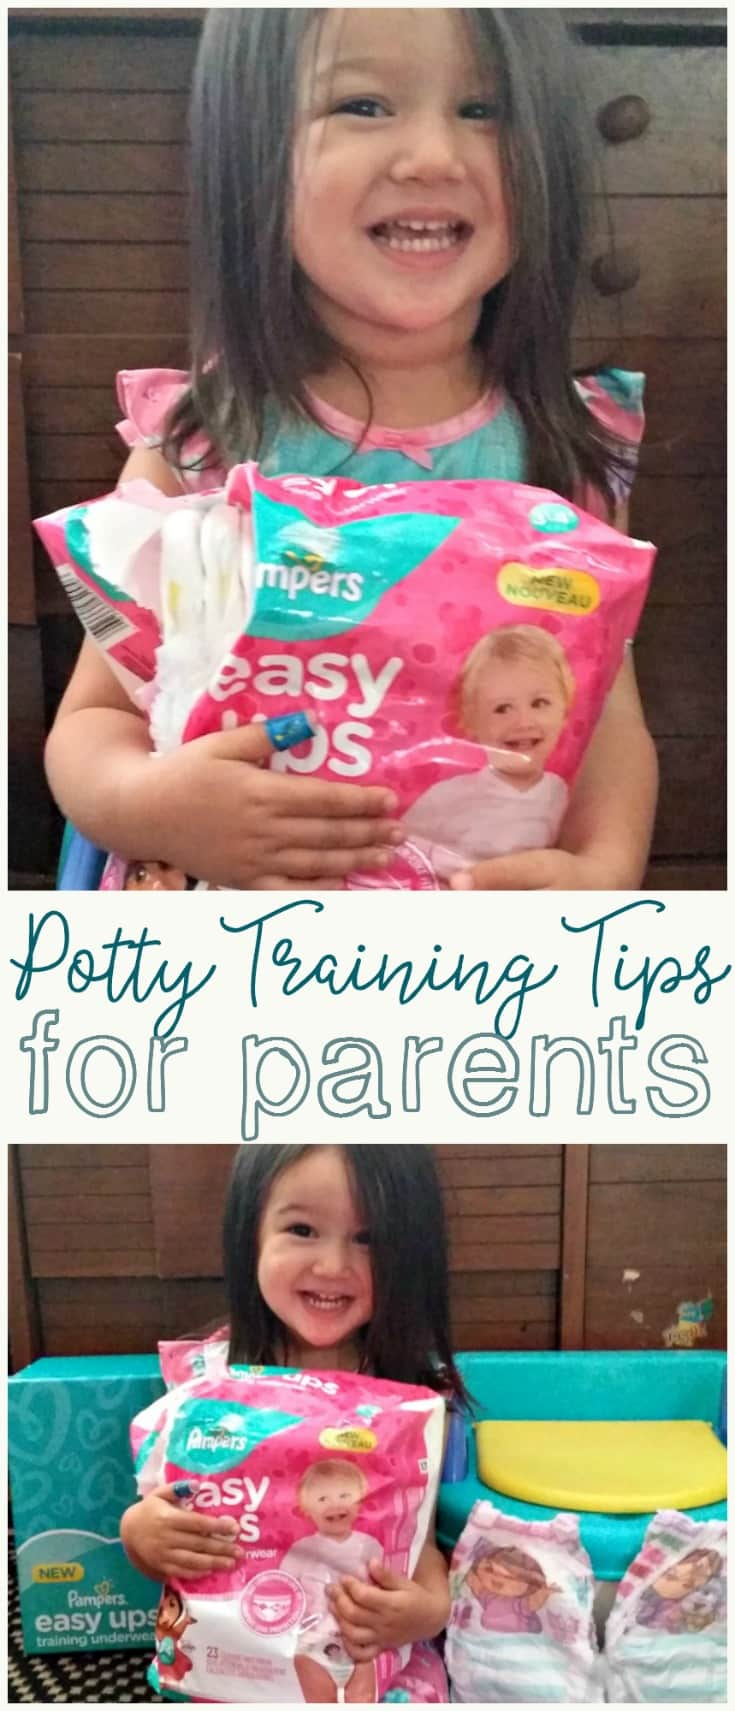 Have you started potty training yet? Try some of these tips especially for potty training your toddler.